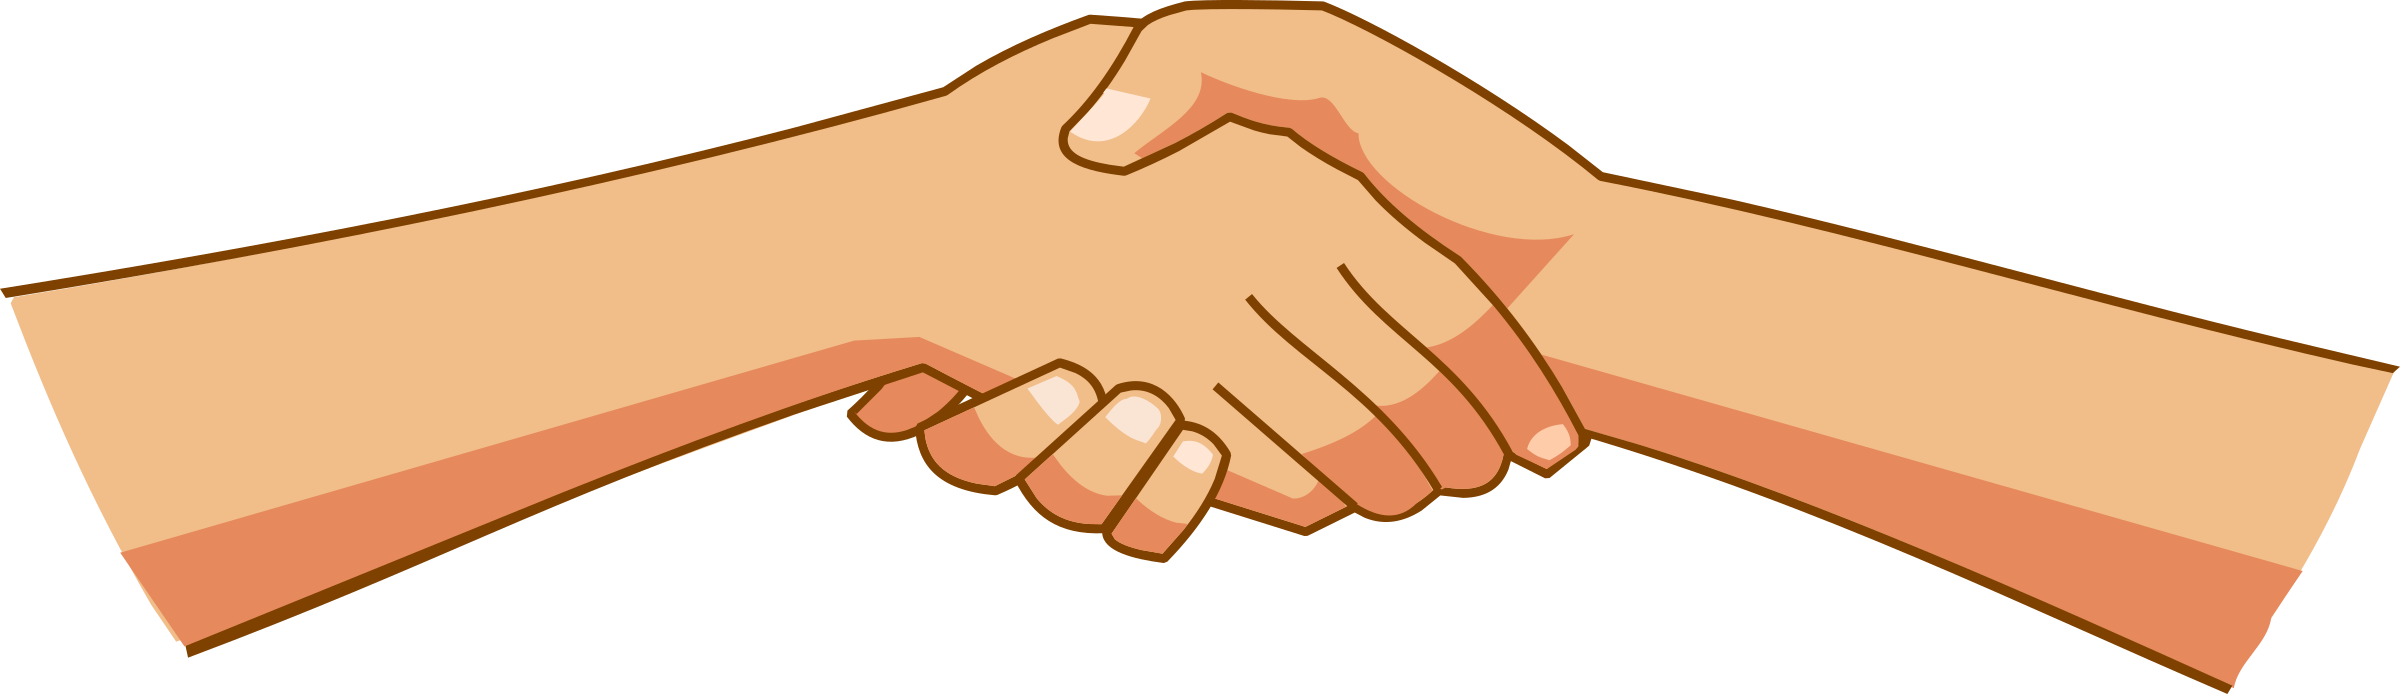 Shaking hands big image. Hand clipart team